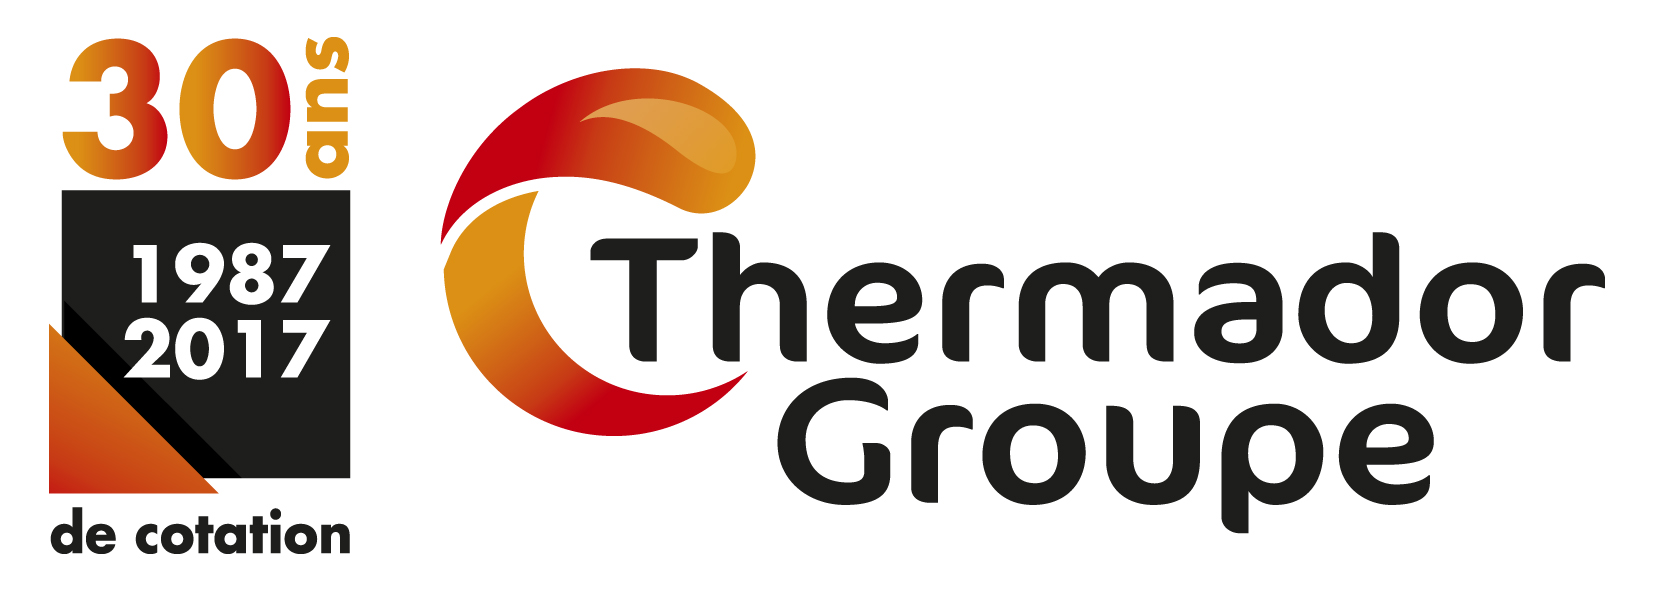 LOGO THERMADOR GROUPE